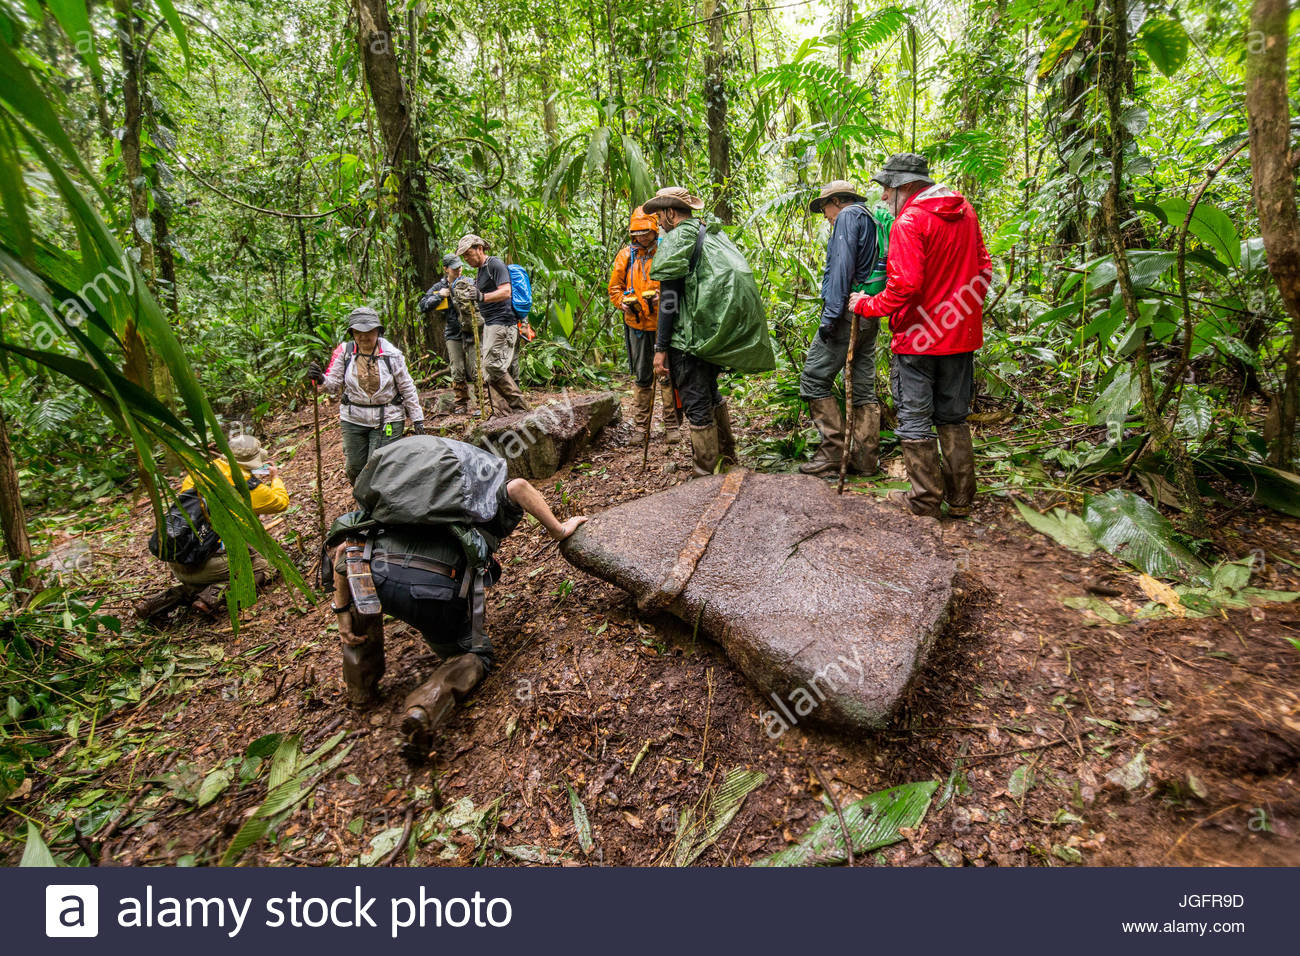 A scientific team inspects a construction stone that they believe was carved by members of a vanished civilization. - Stock Image